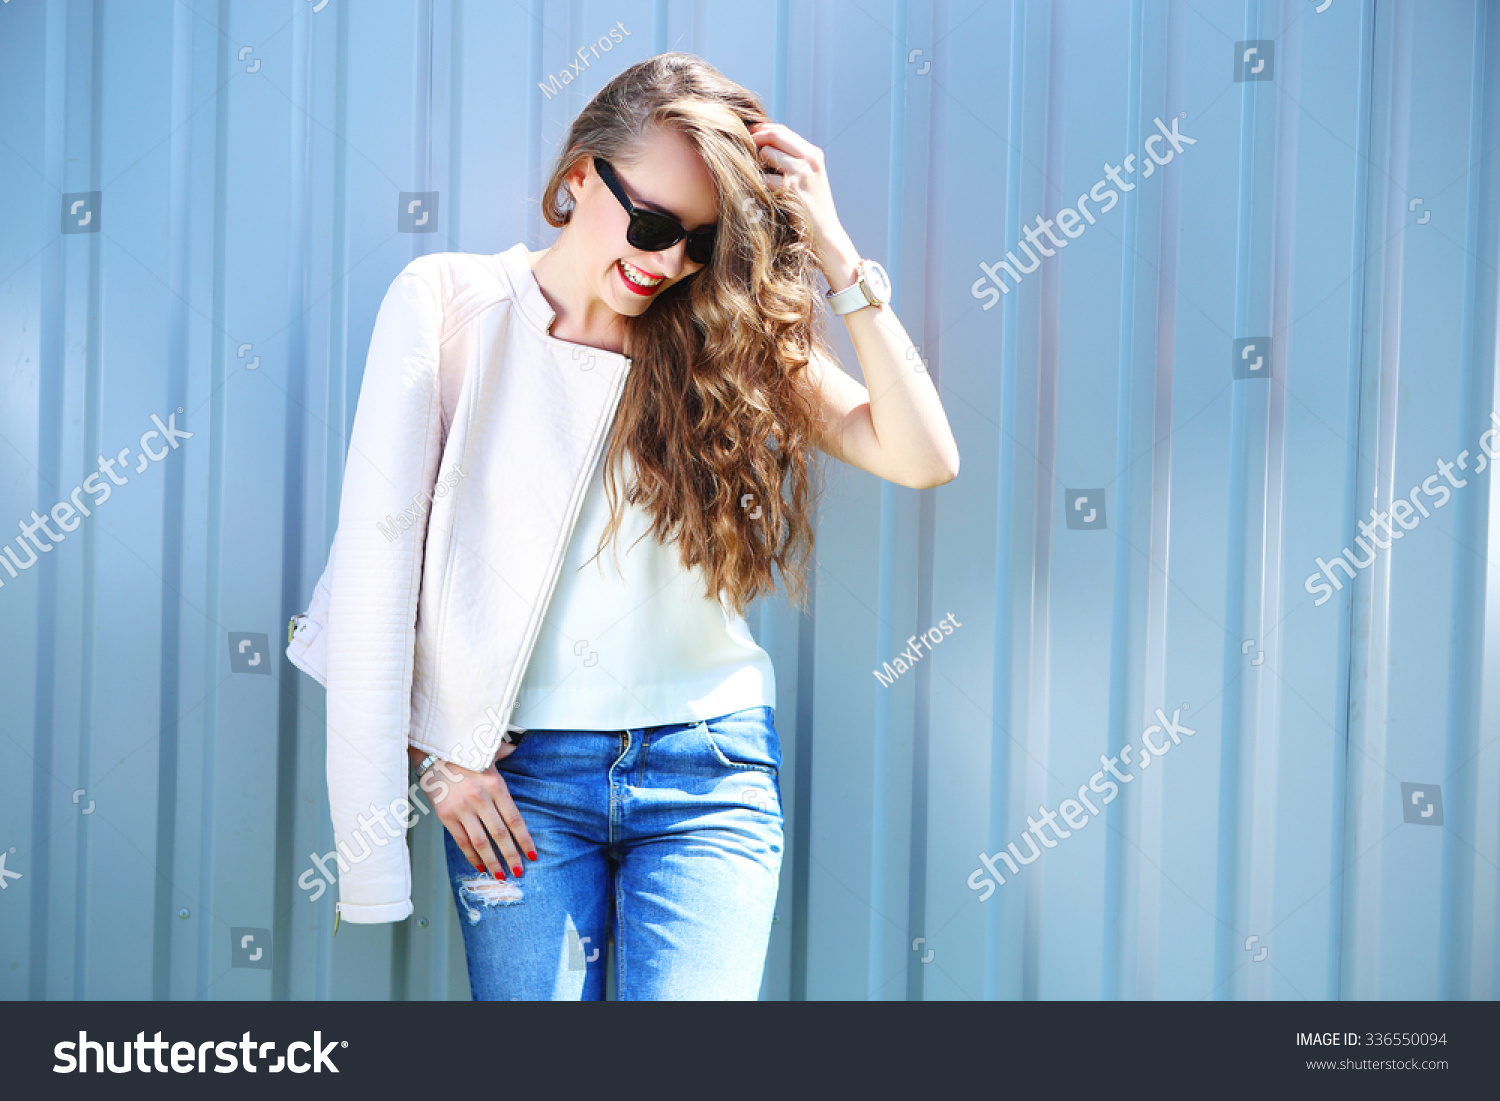 Hair Style Jeans: Fashion Model Long Curly Hair Wearing Stock Photo